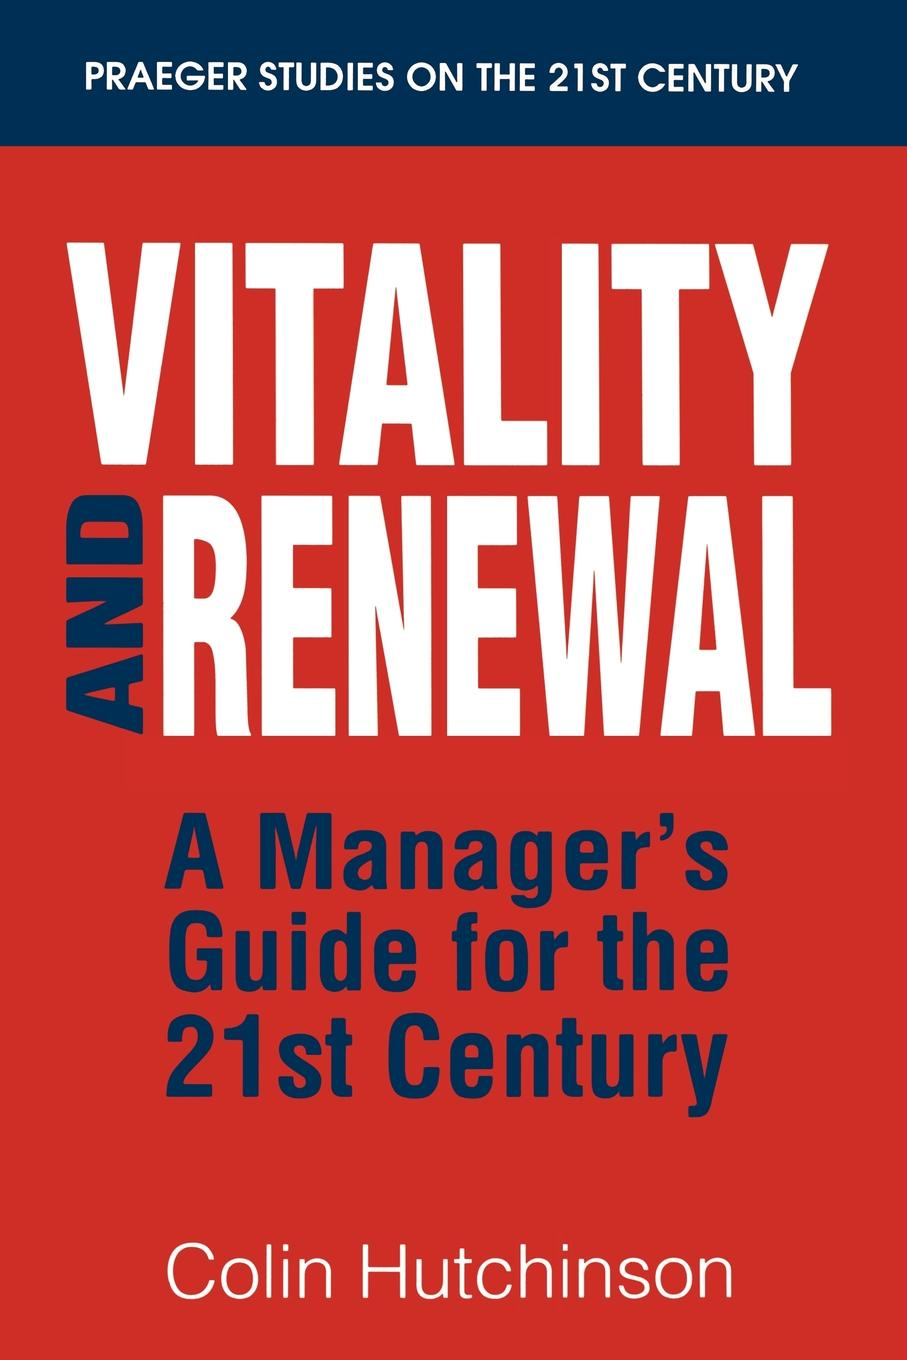 Colin Hutchinson Vitality and Renewal. A Manager's Guide for the 21st Century john shook r the god debates a 21st century guide for atheists and believers and everyone in between